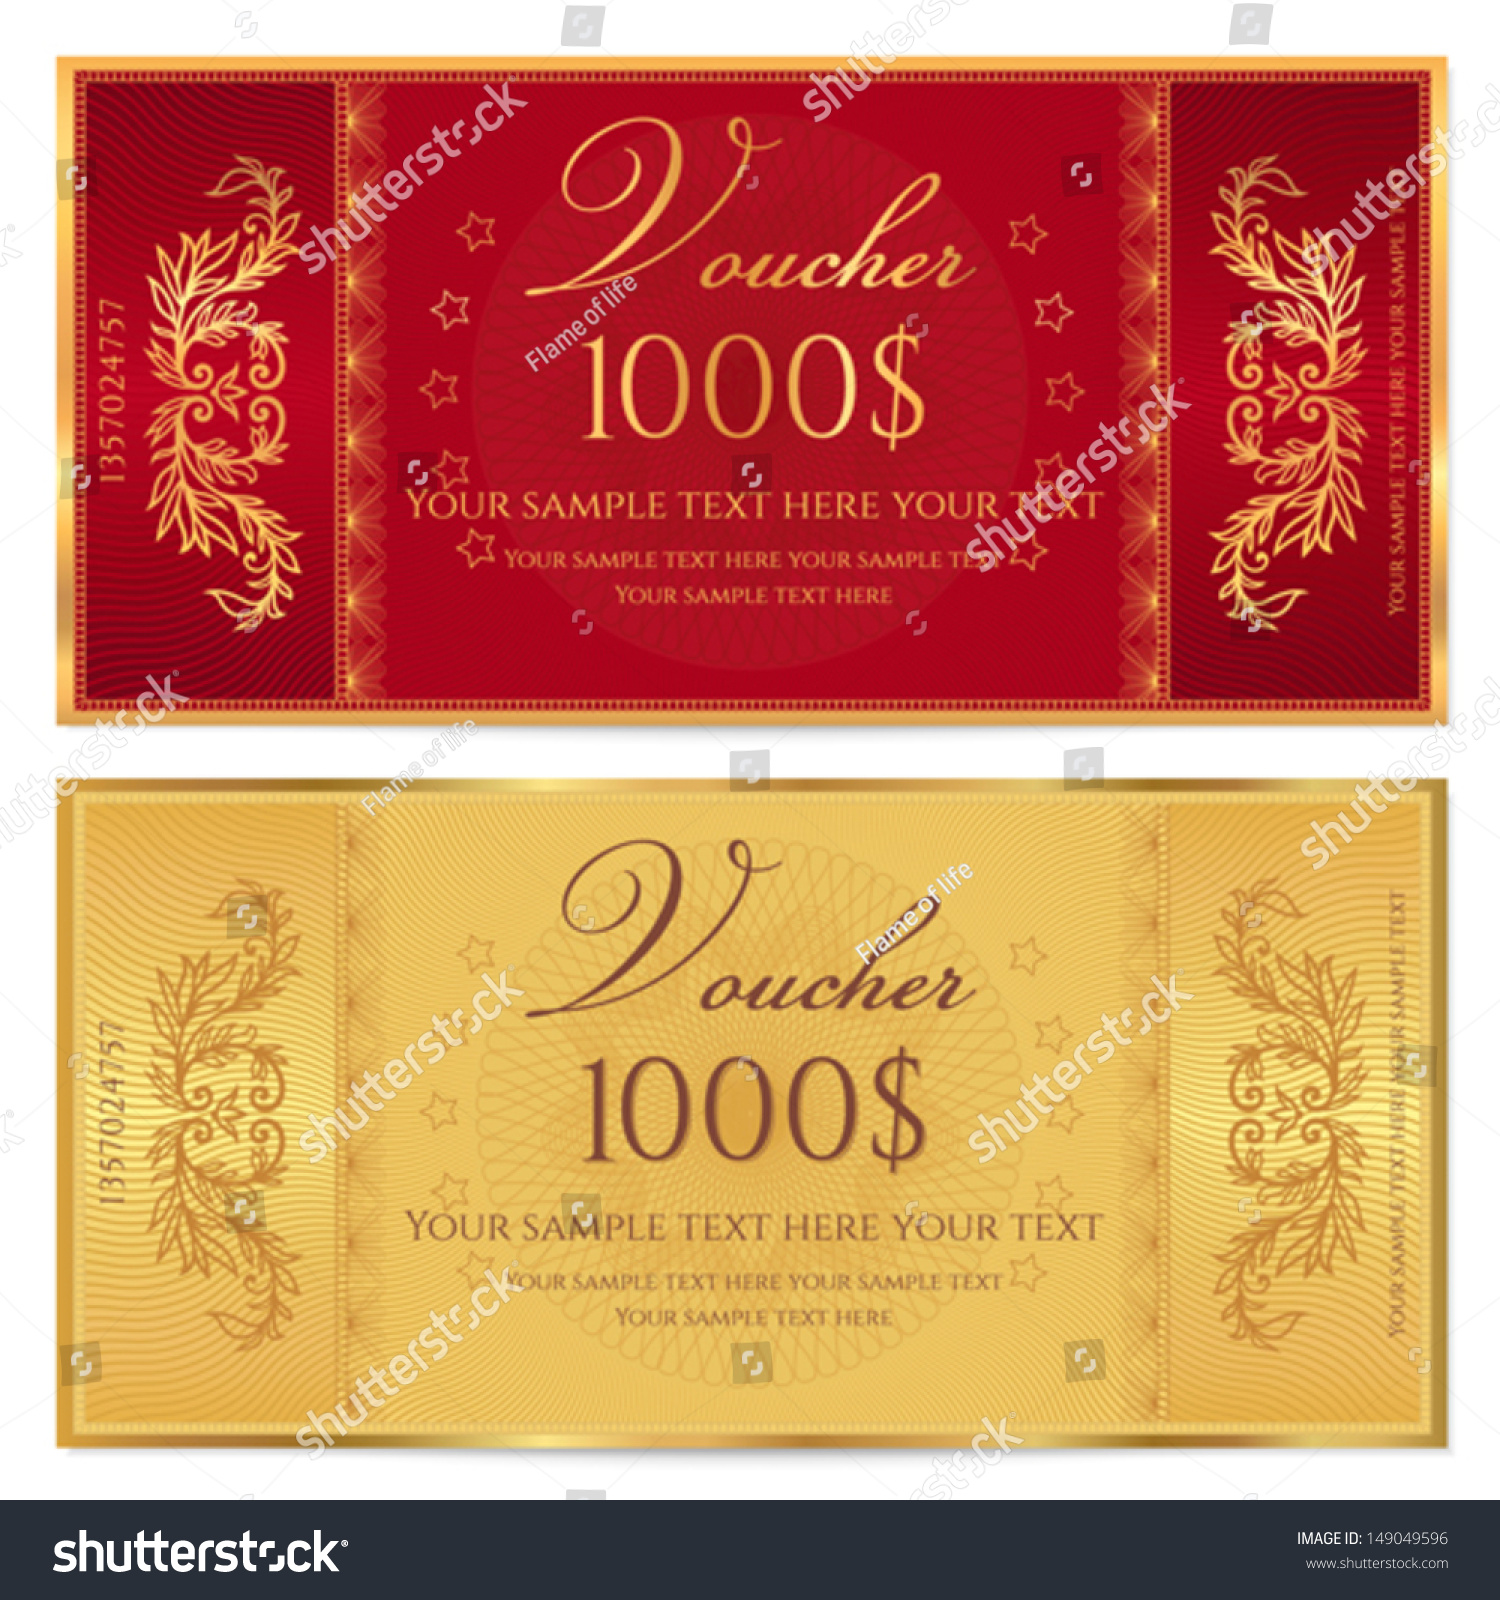 gold ticket voucher gift certificate coupon stock vector  gold ticket voucher gift certificate coupon template floral border background design